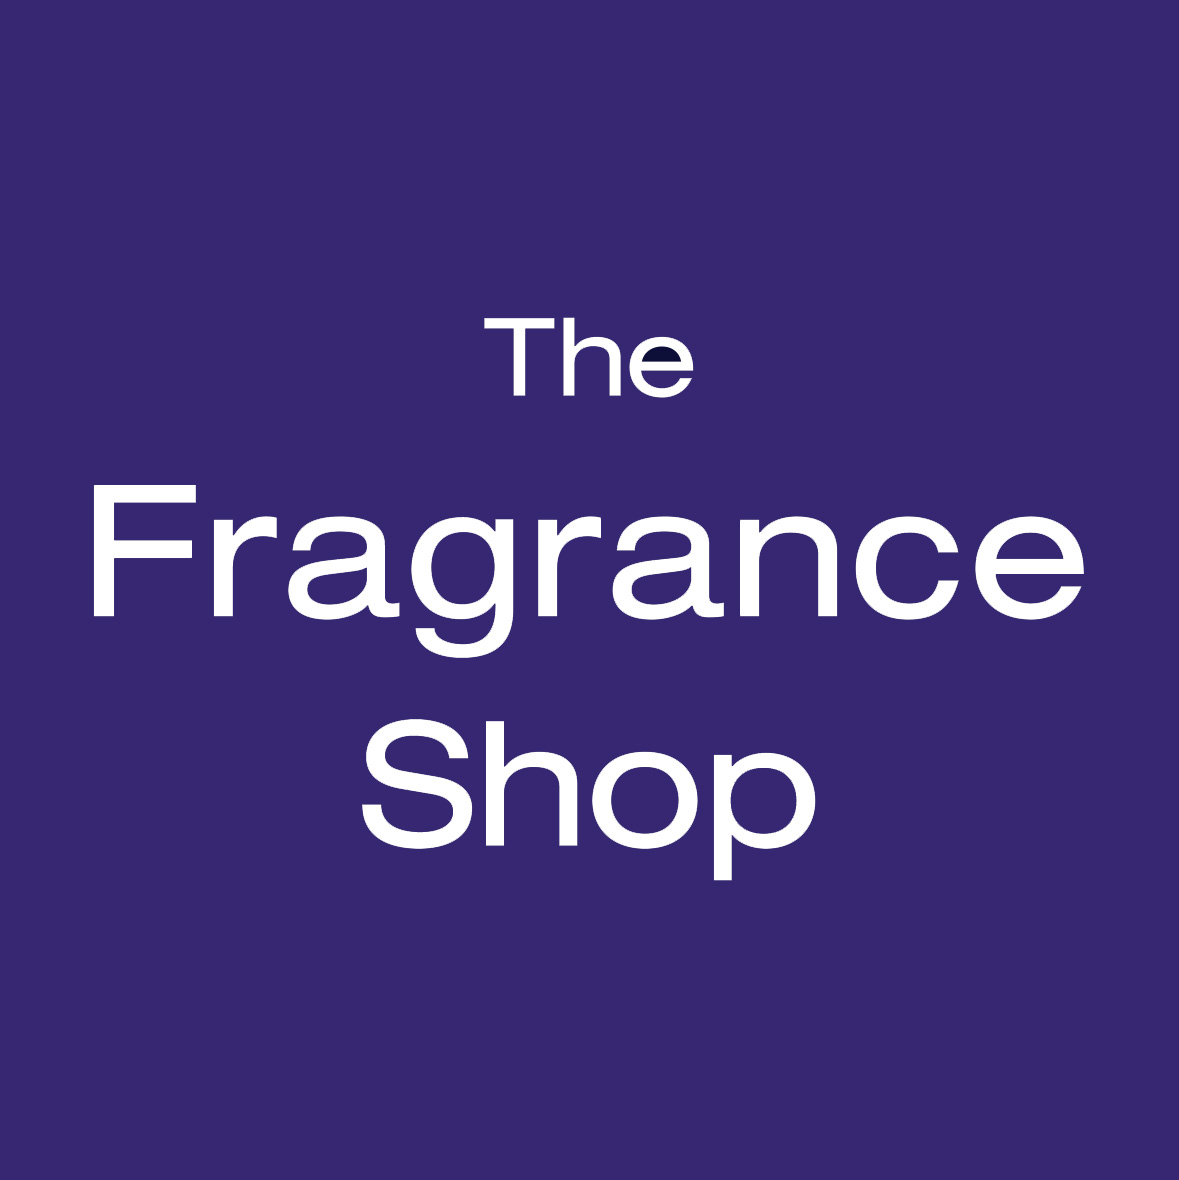 The Fragrance Shop promo code